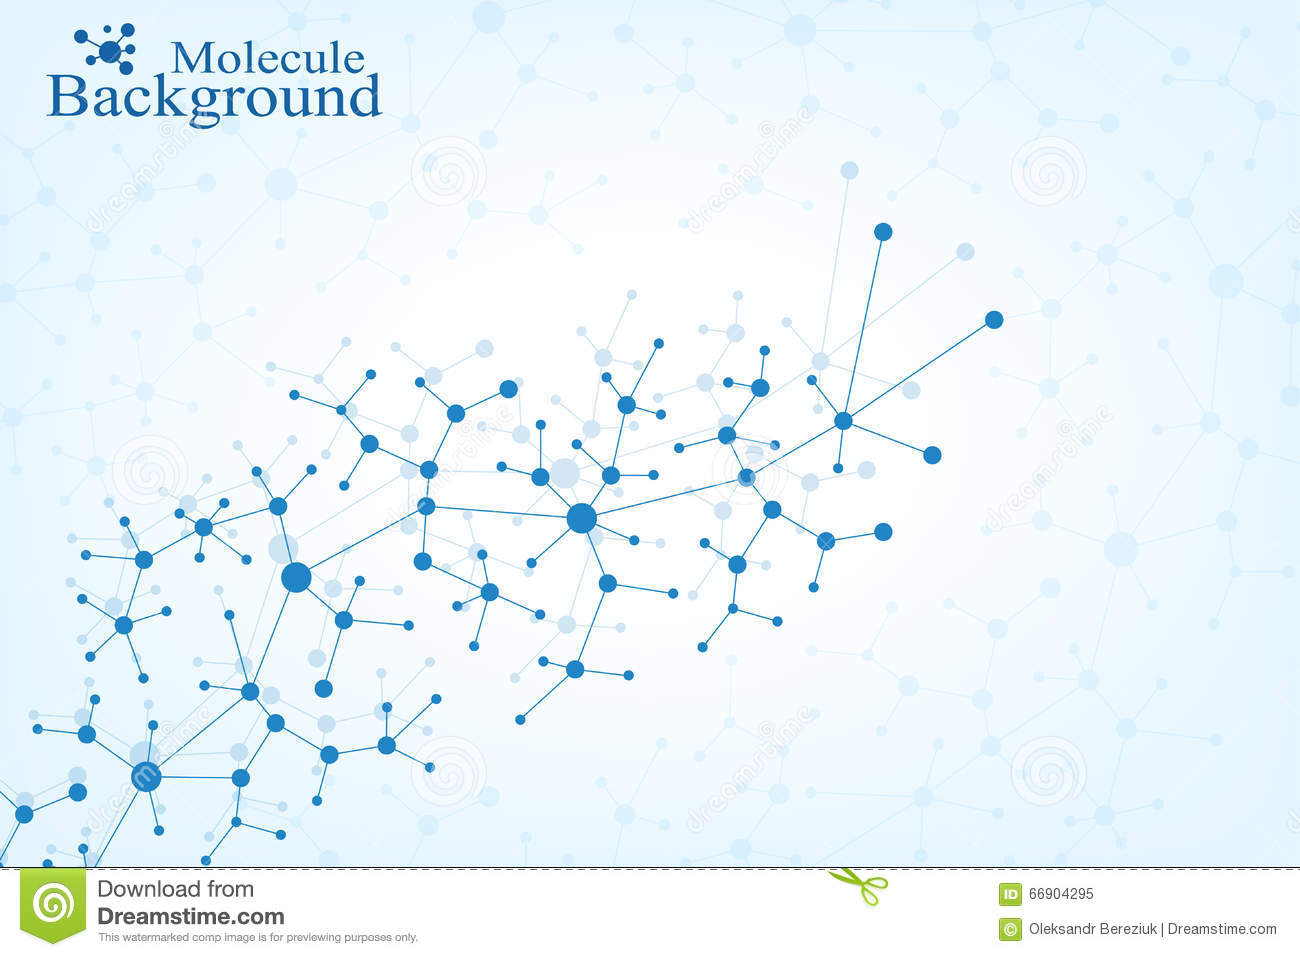 Molecule Structure Dna And Communication Background Connected Lines With Dots Concept Of The